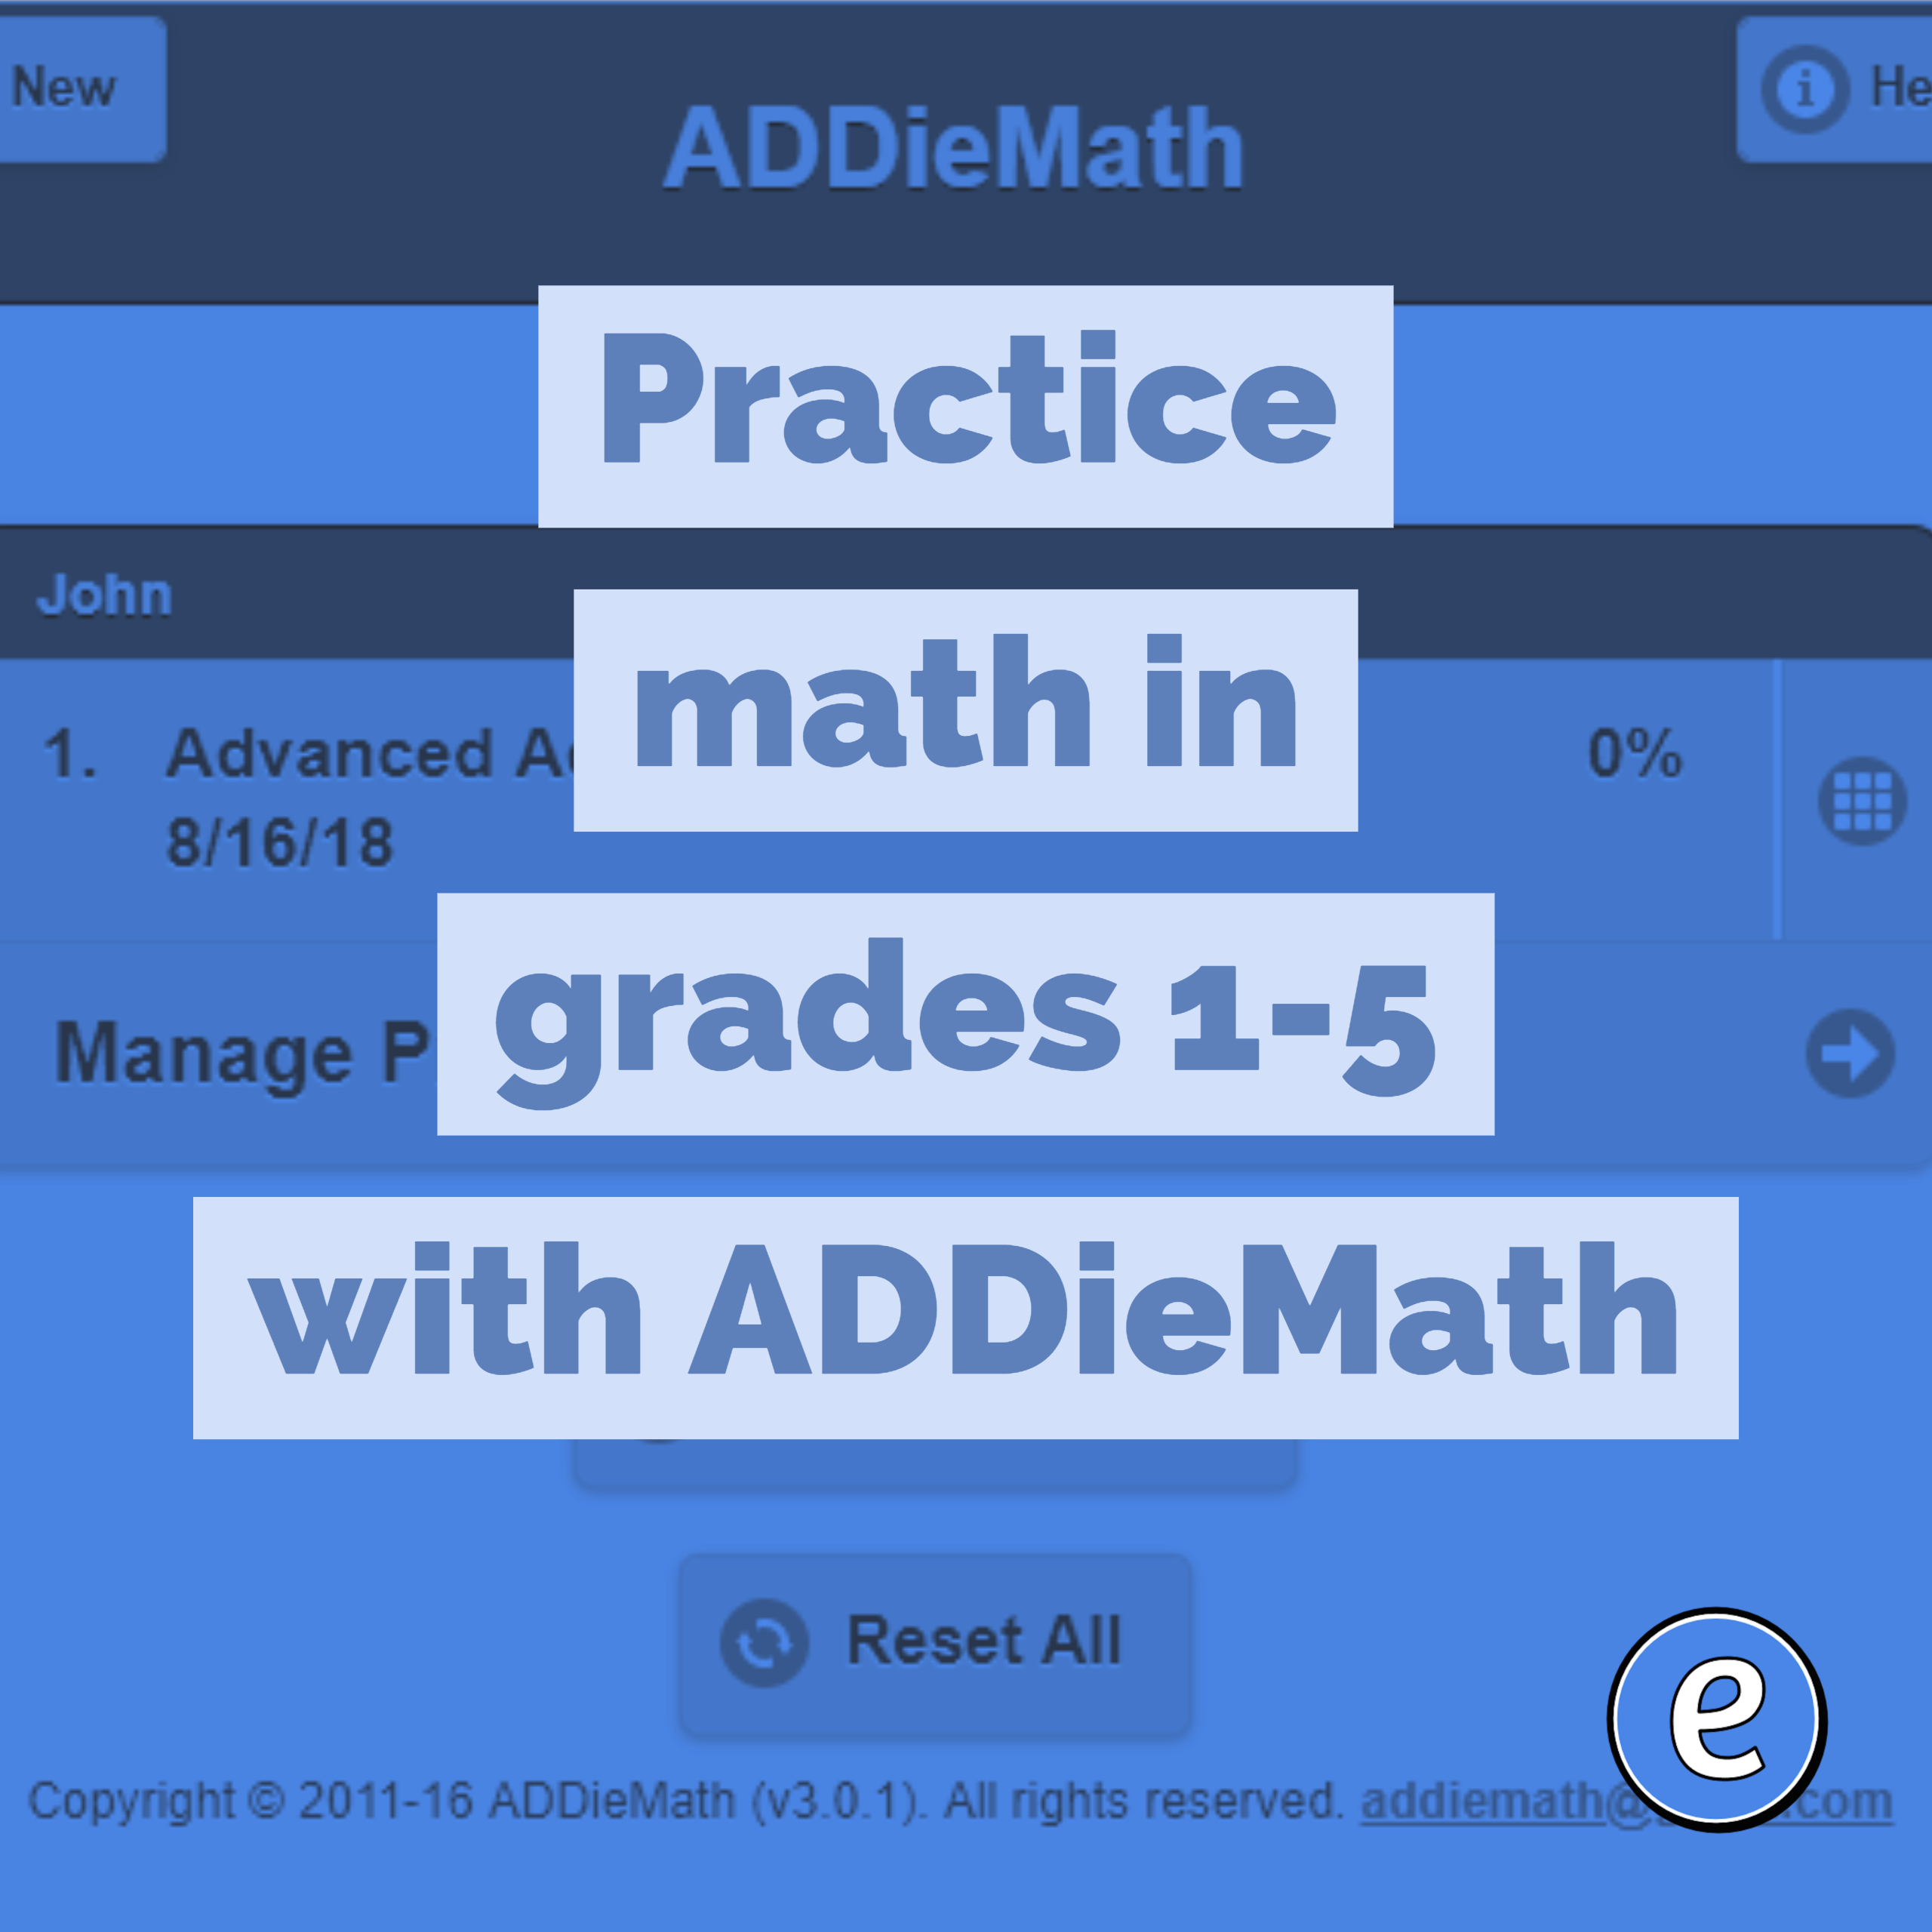 Practice math in grades 1-5 with ADDieMath